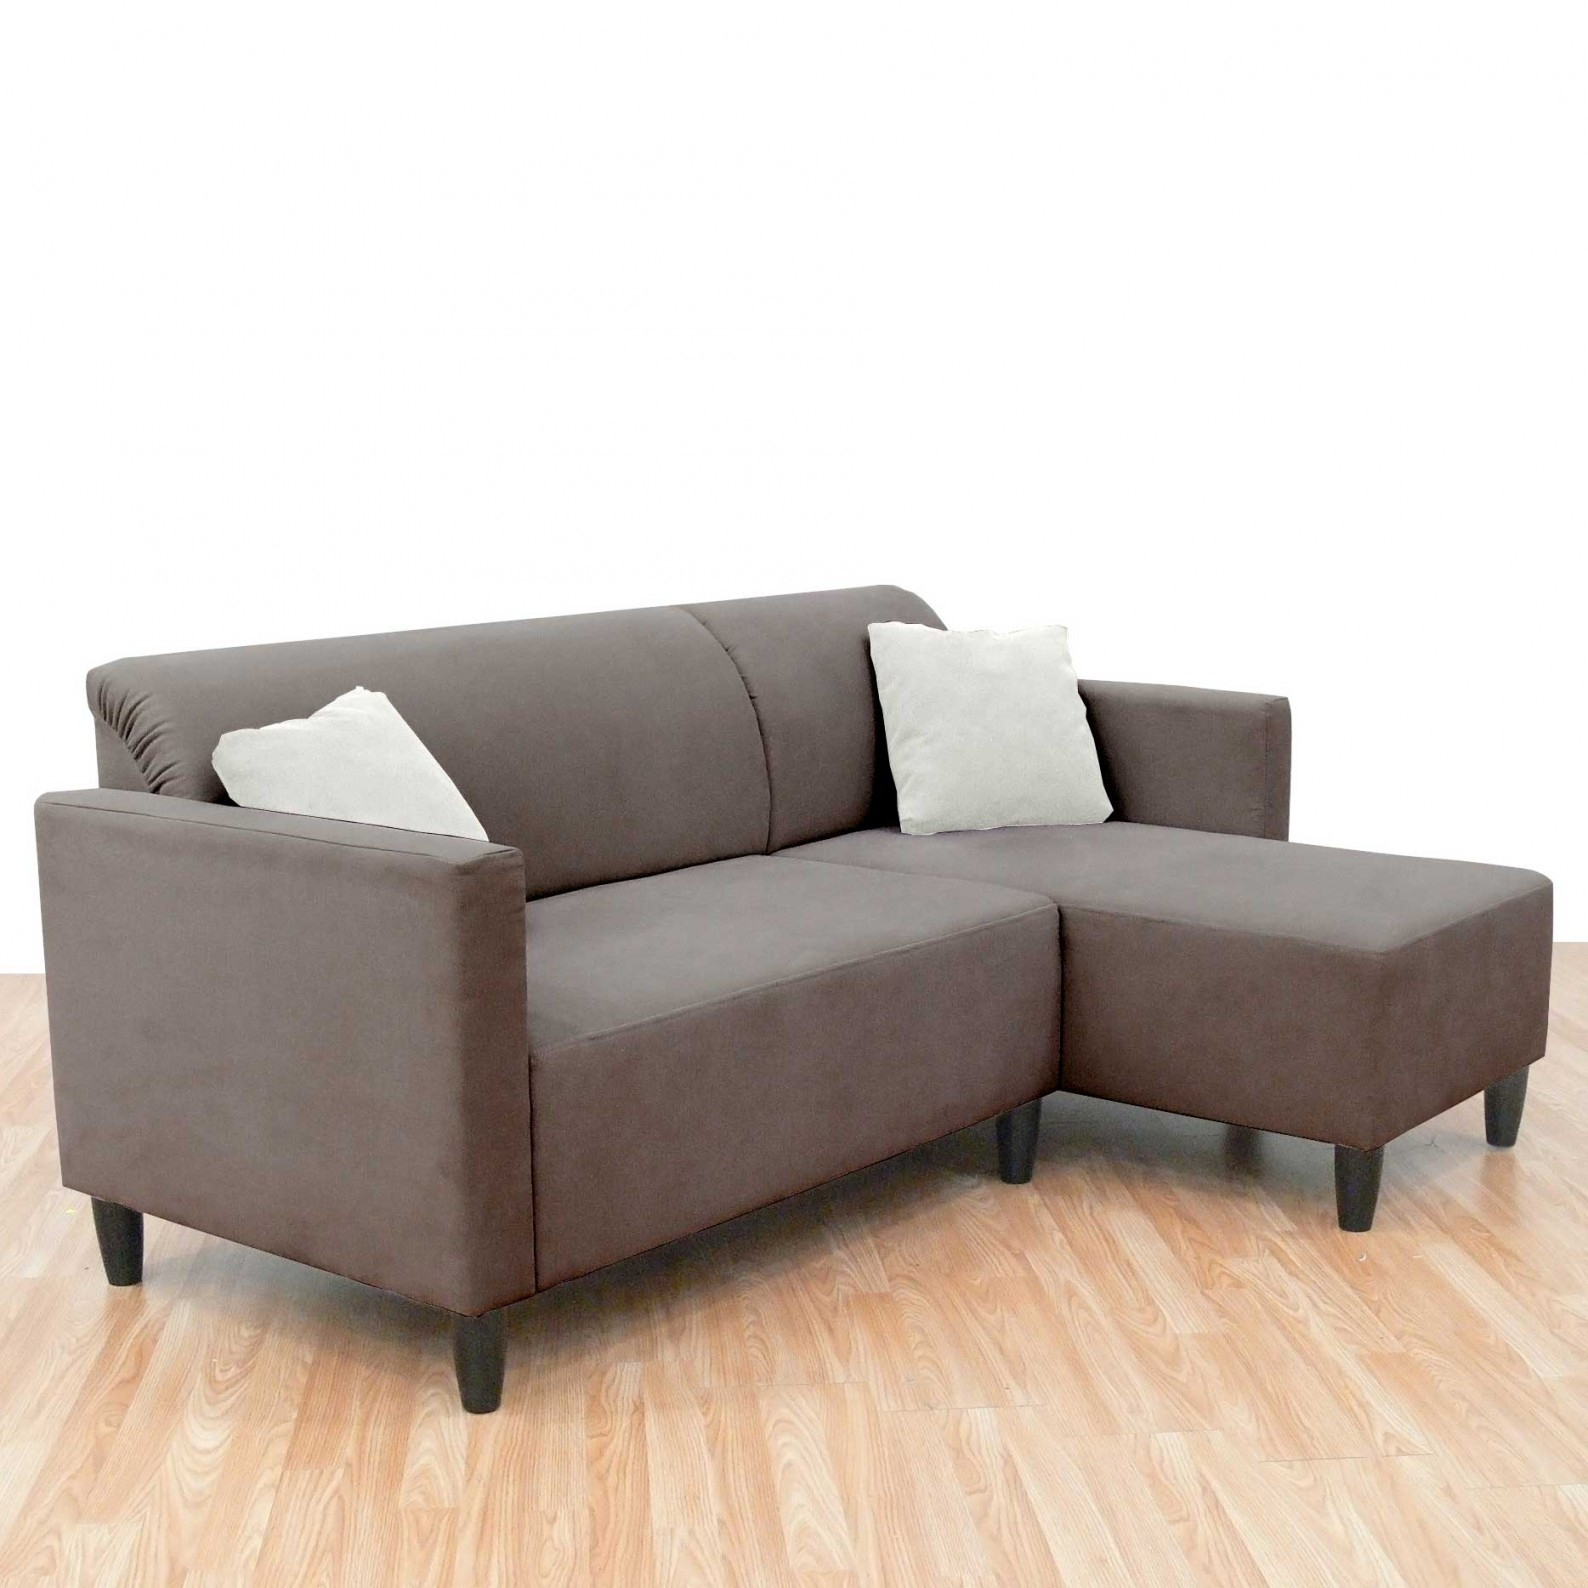 Canapé Ikea Convertible Angle Beau Collection Canap Petit Angle Teinture Pour Canap En Cuir Lovely Waitro Page